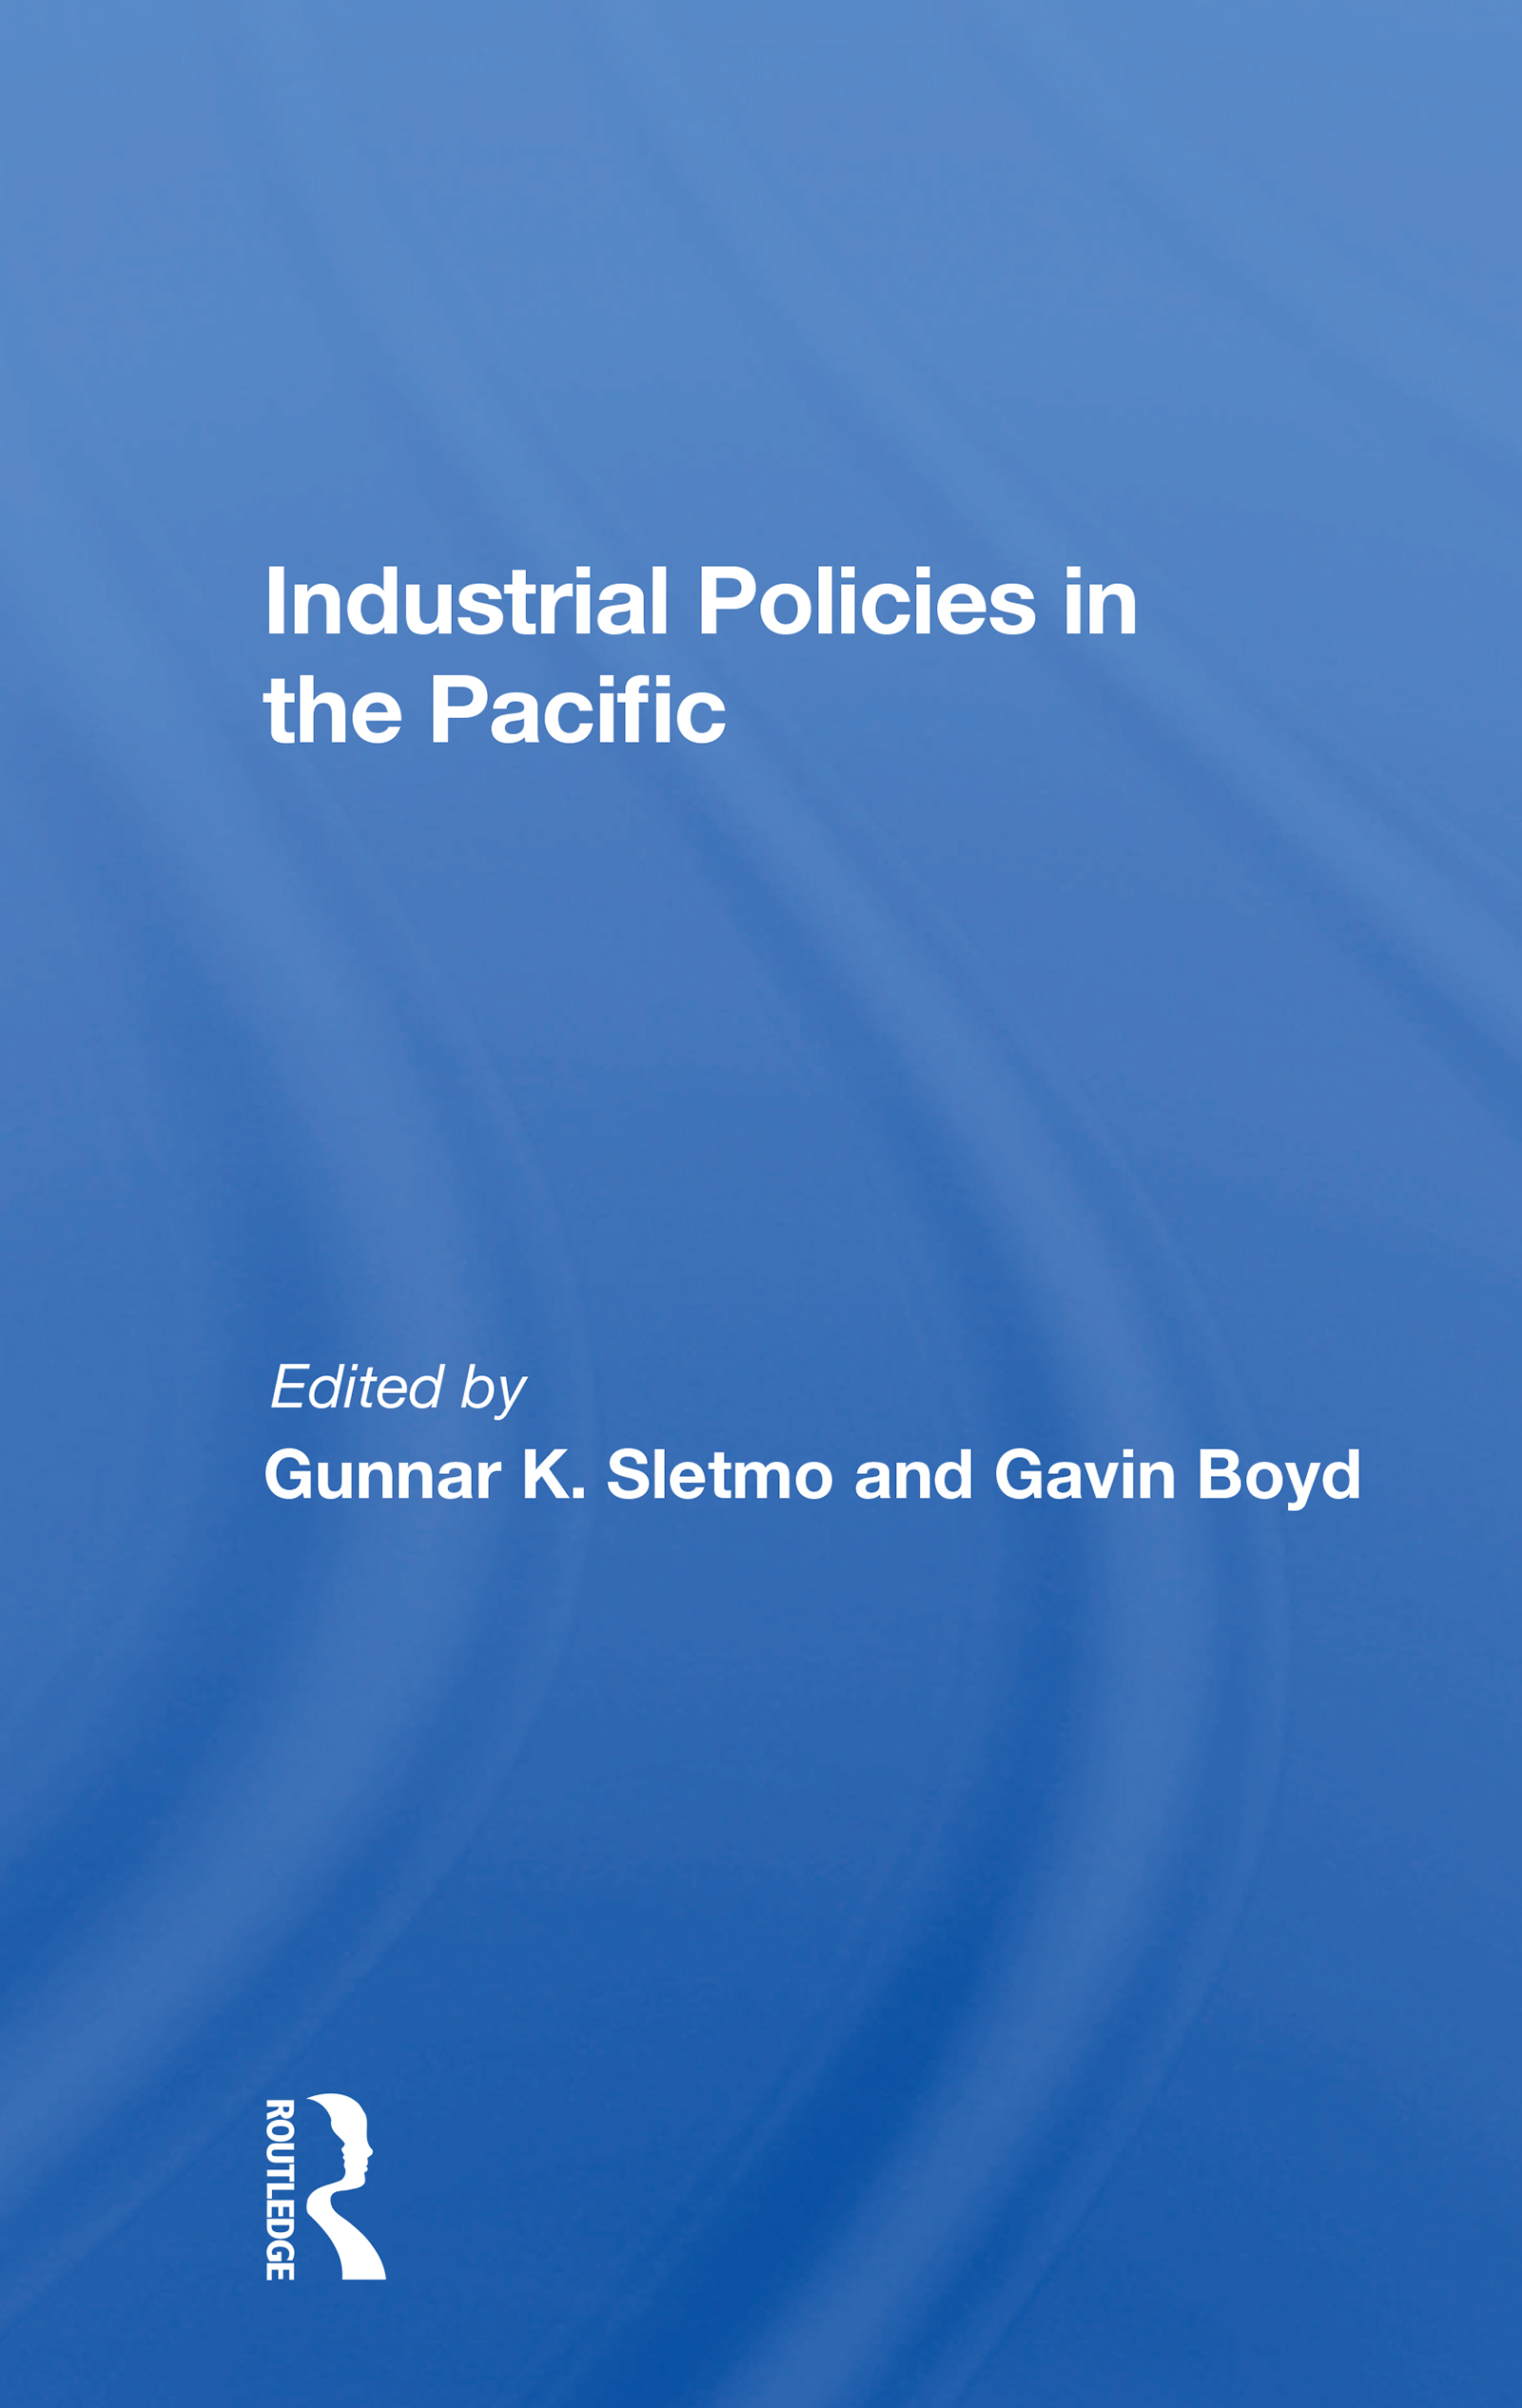 The Funding of Pacific Industries